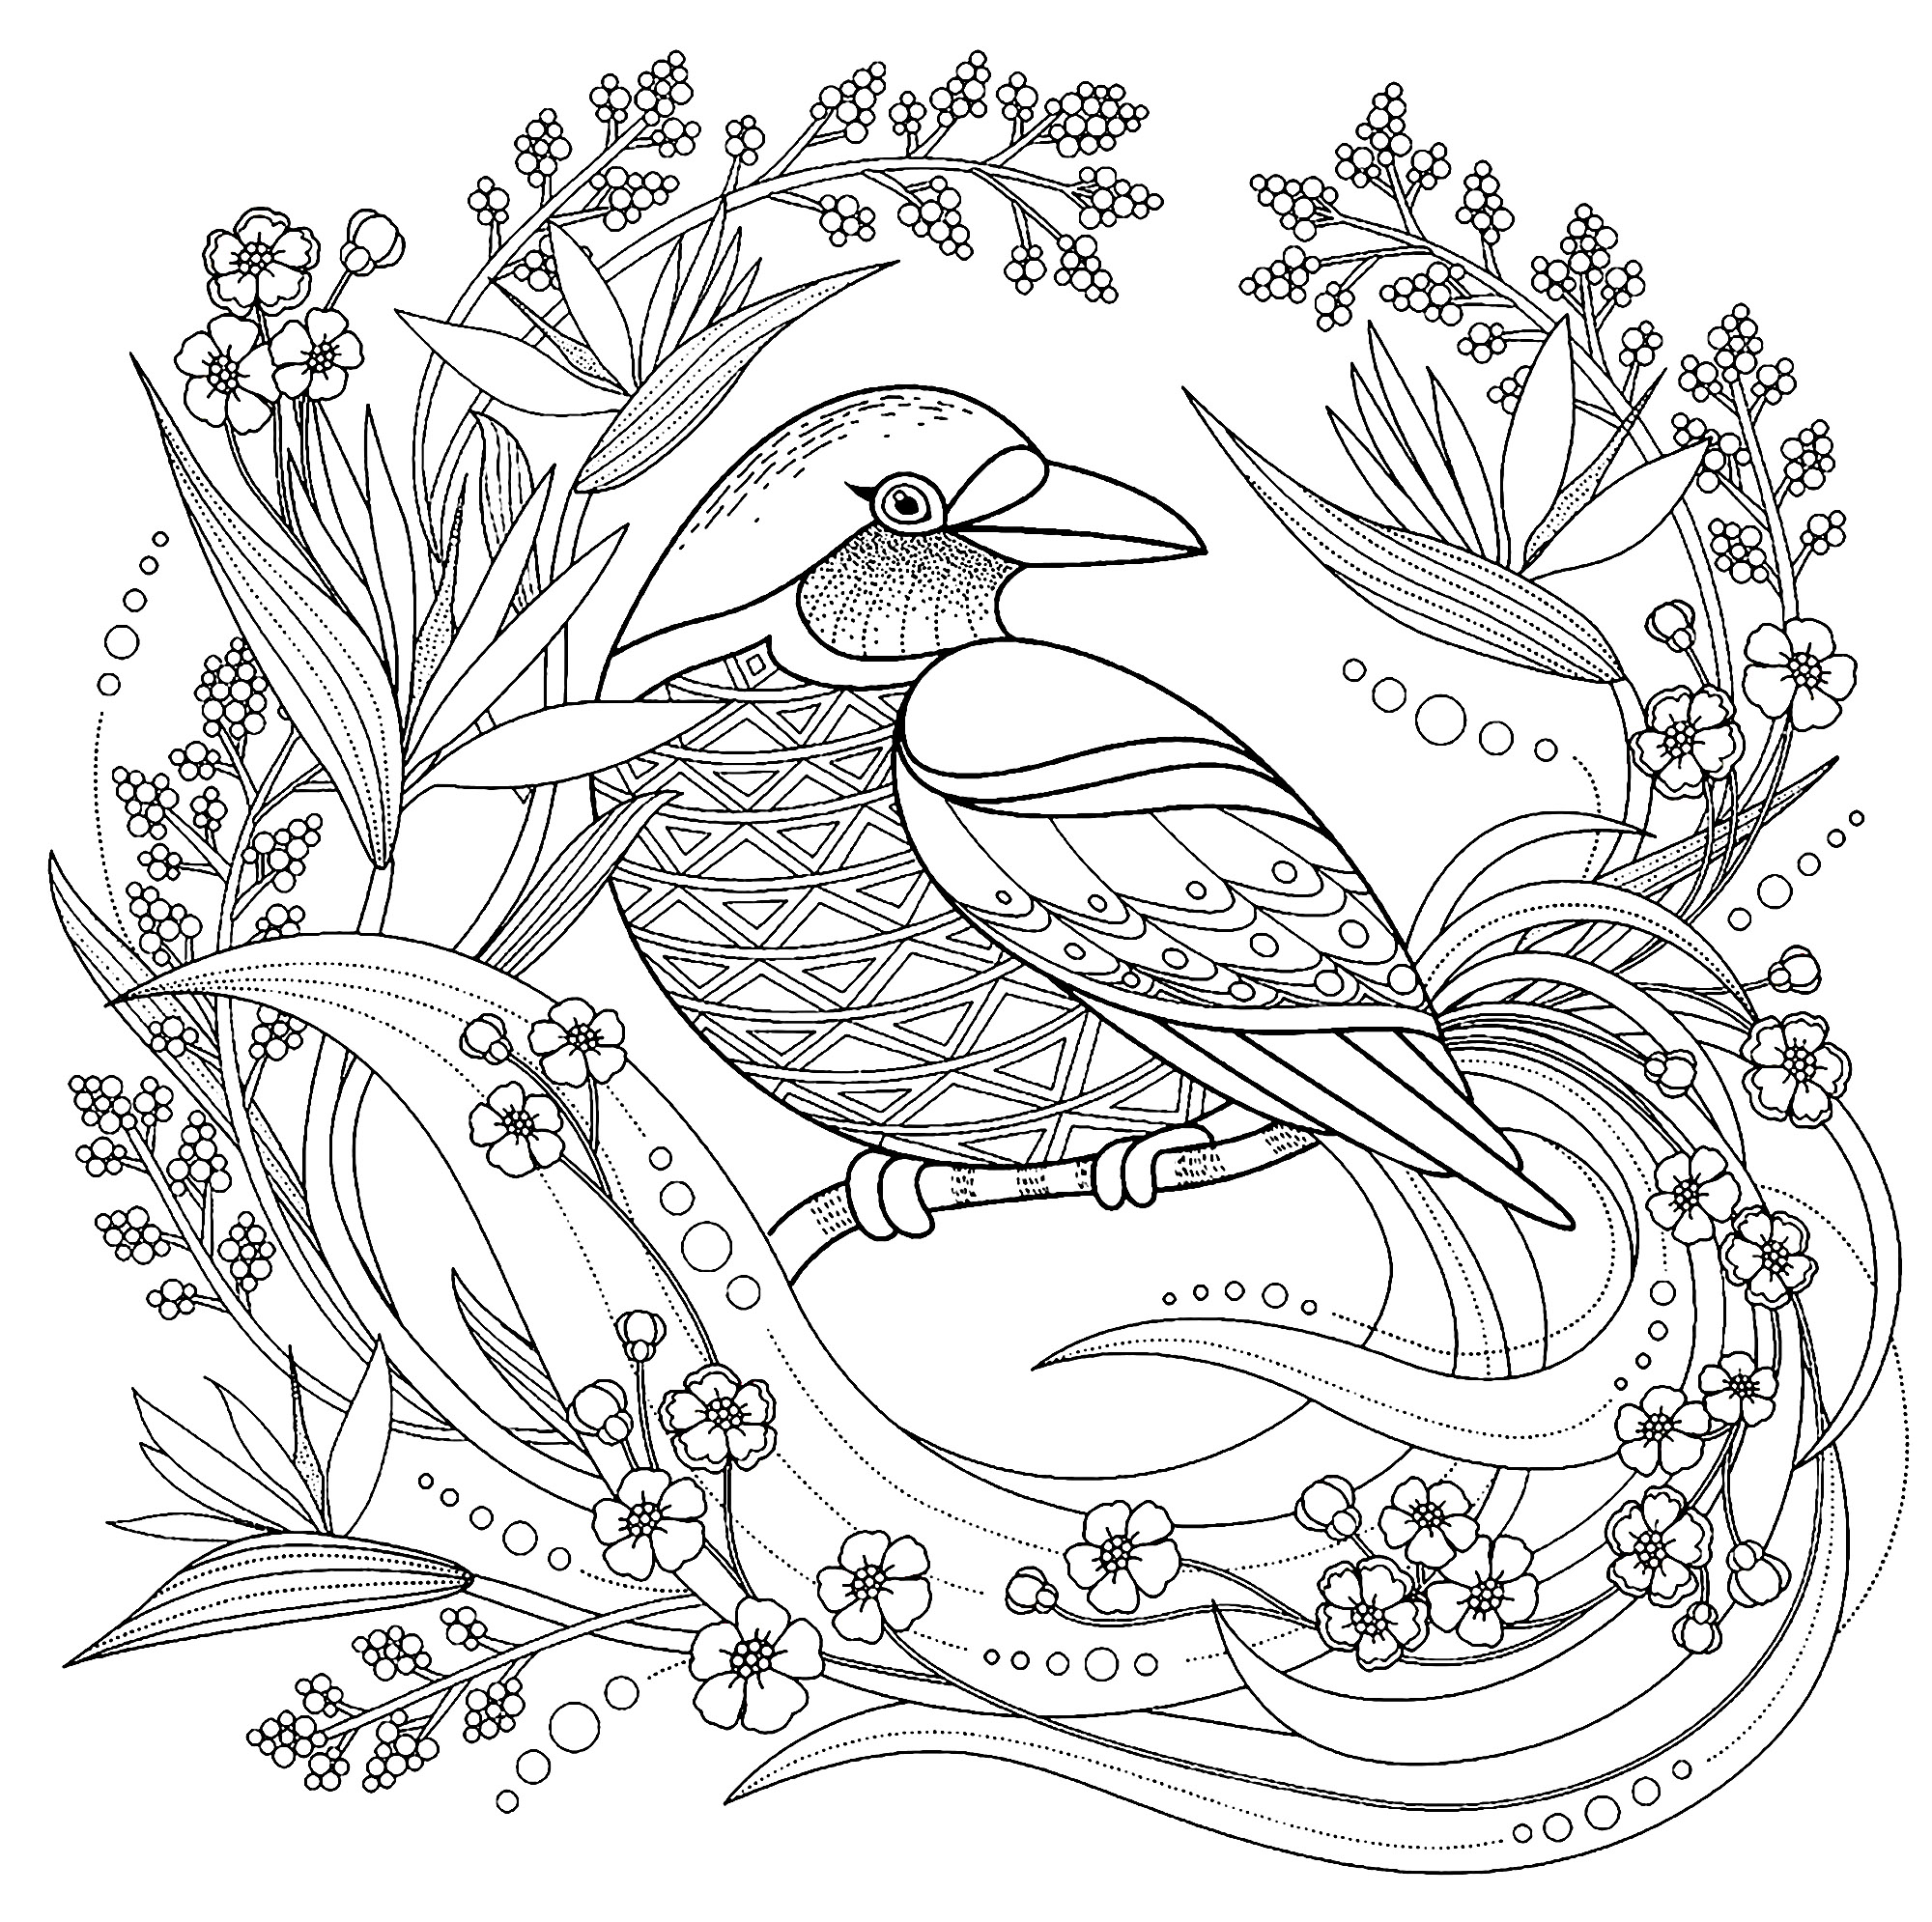 bird colouring pages for kids birds coloring pages getcoloringpagescom colouring bird for kids pages